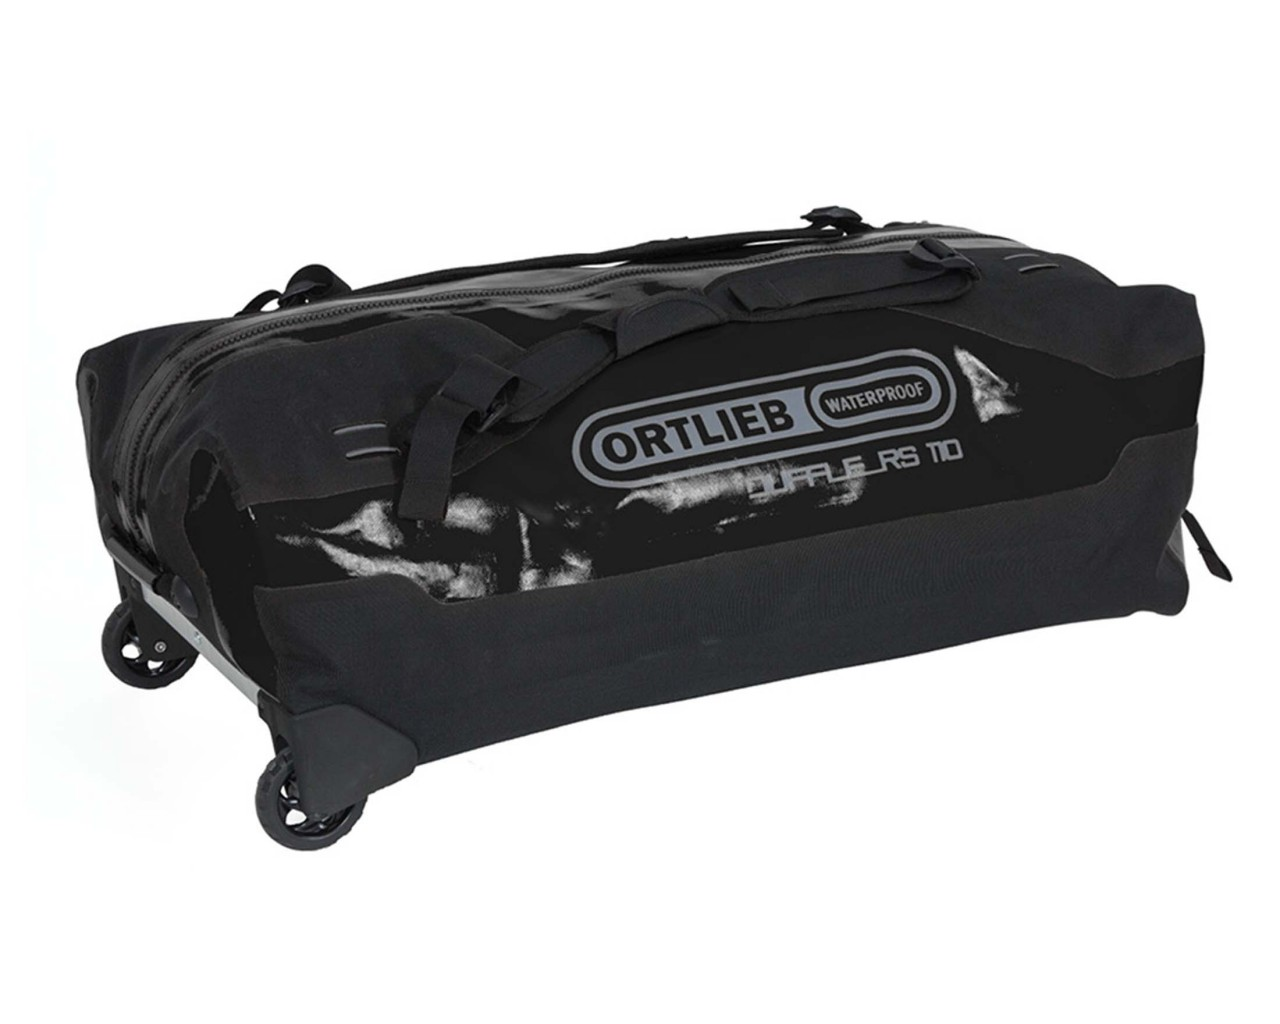 Ortlieb Duffle RS waterproof expedition bag with rolls 85 liter | black